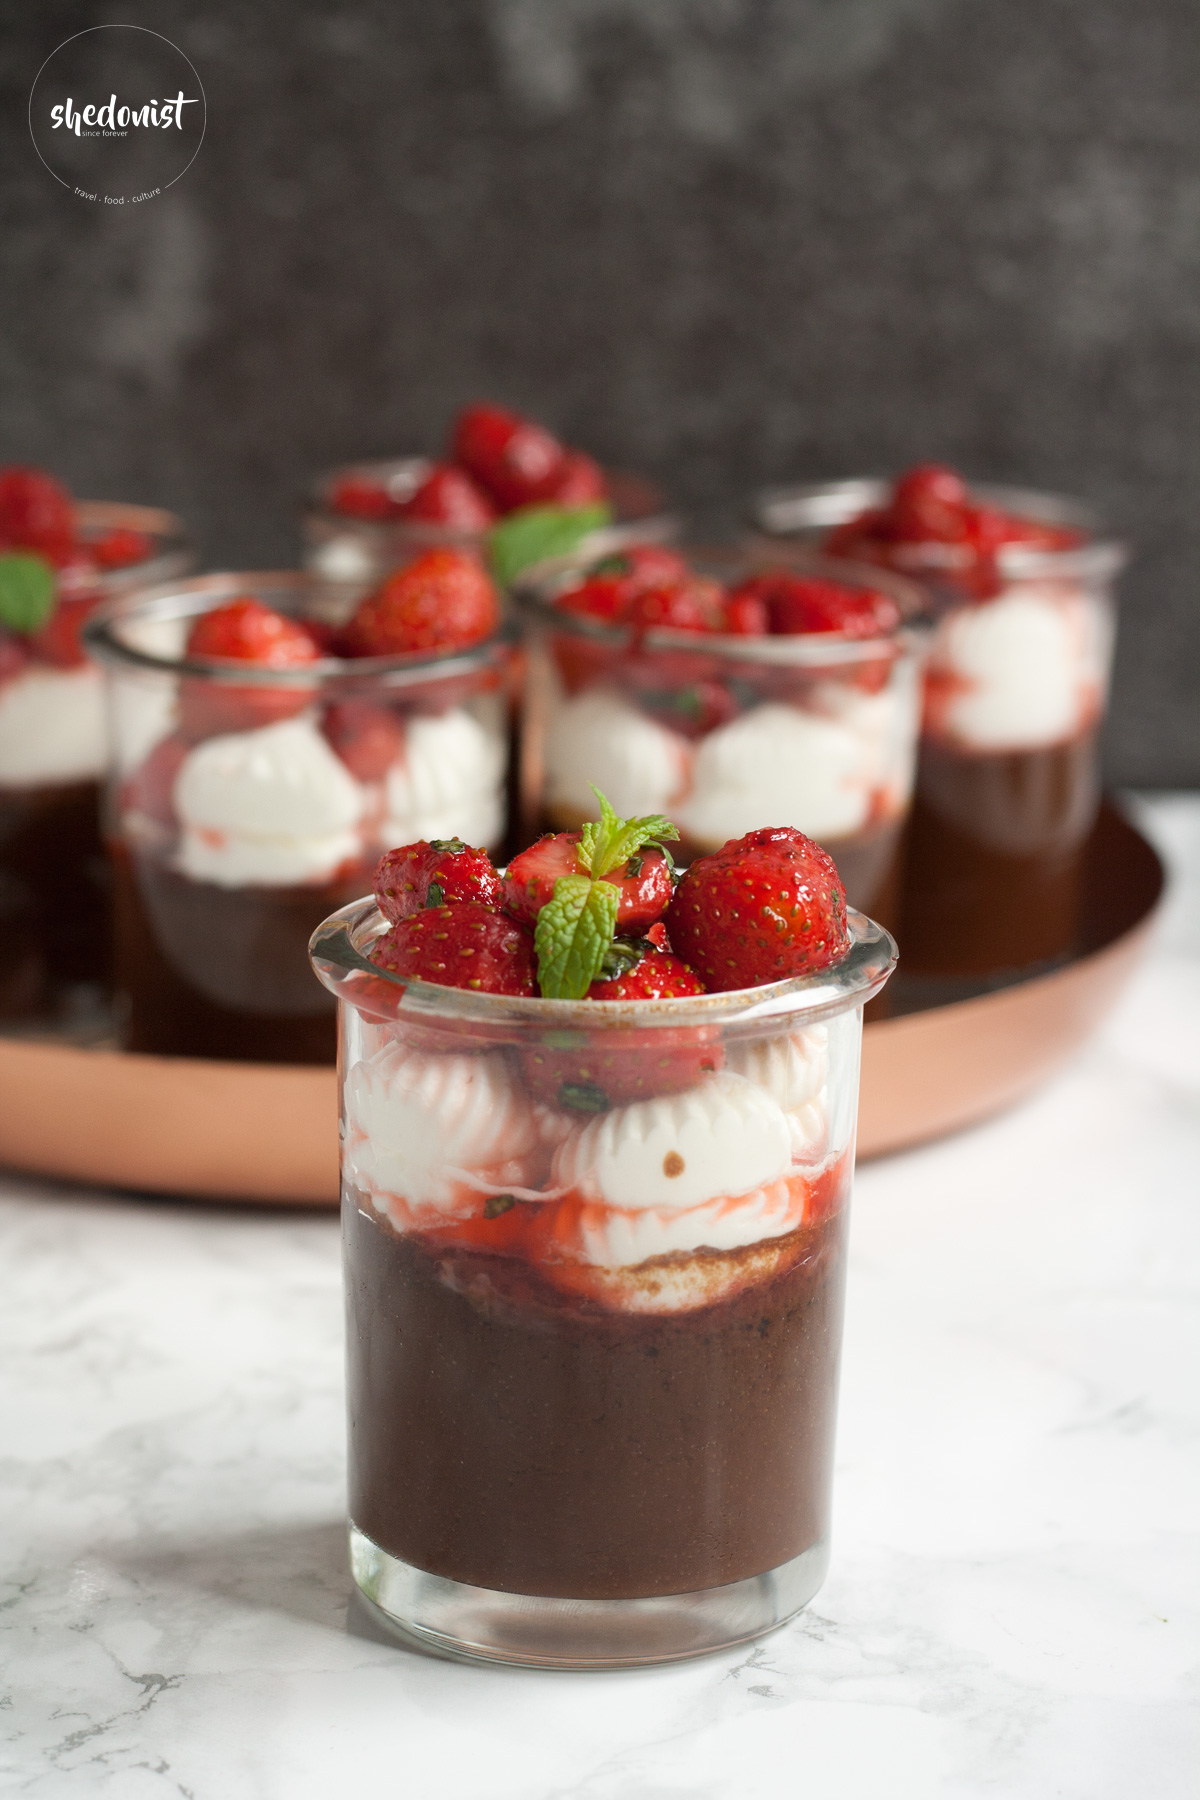 chocolate-cream-with-strawberries-2